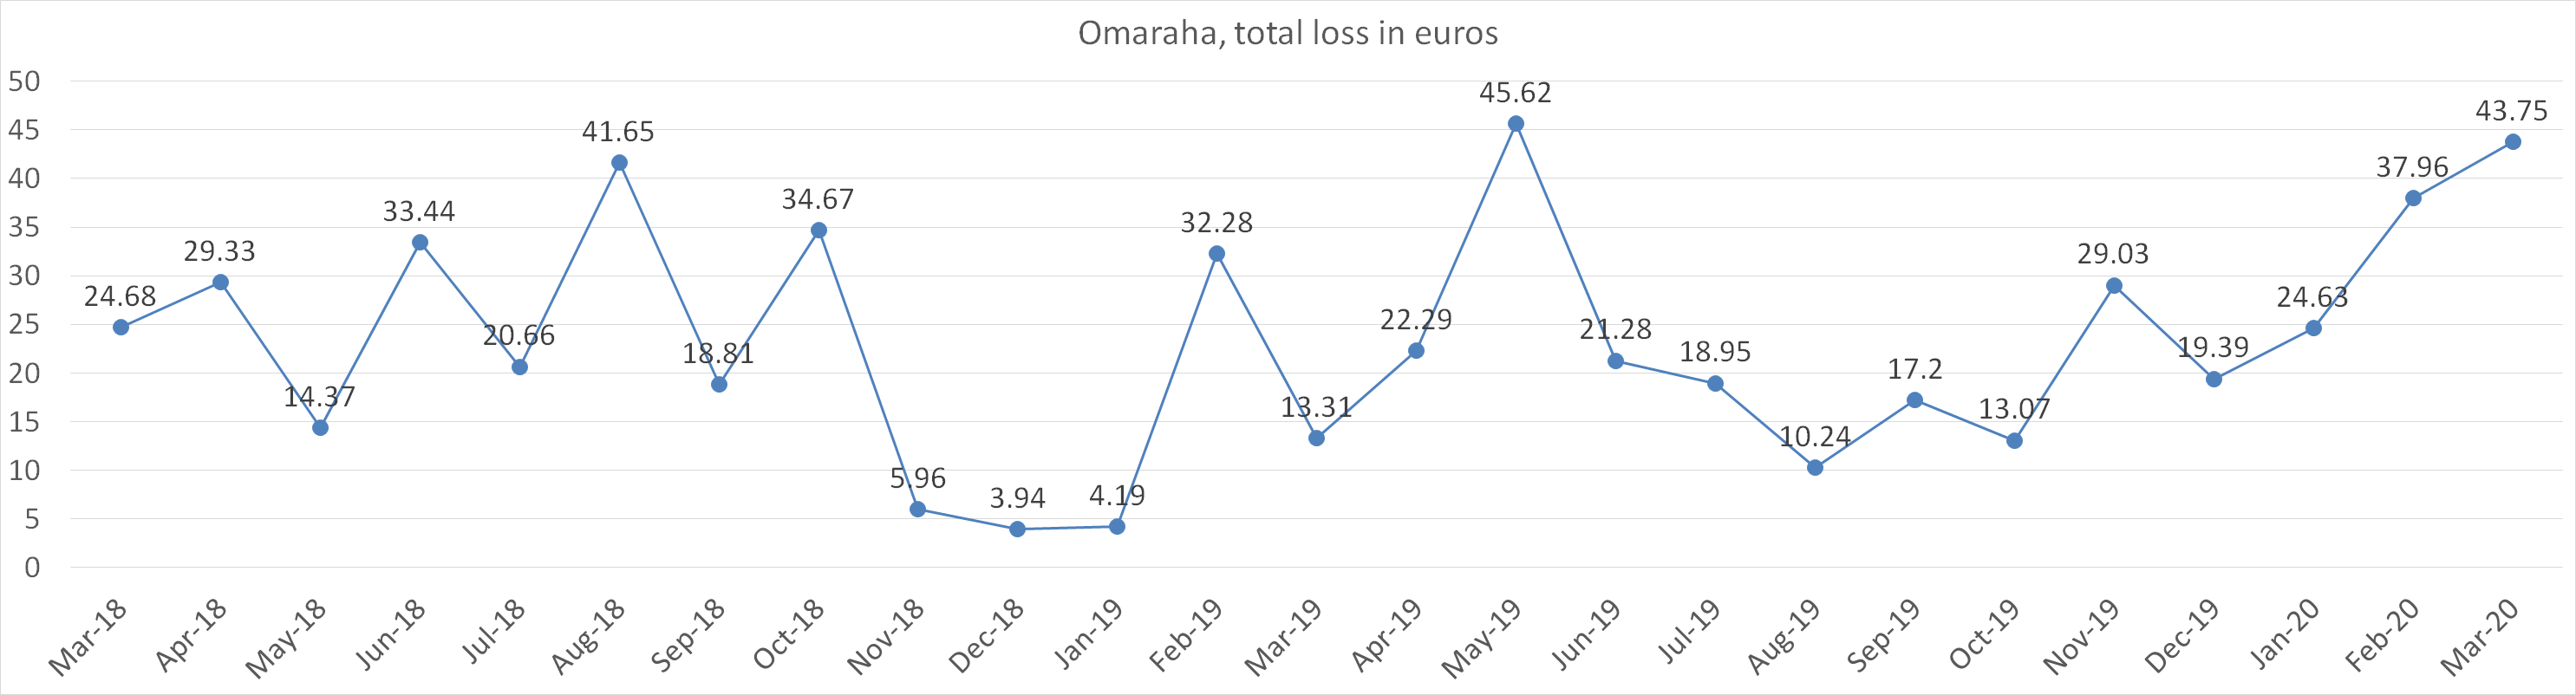 Omaraha, total loss in euros in march 2020